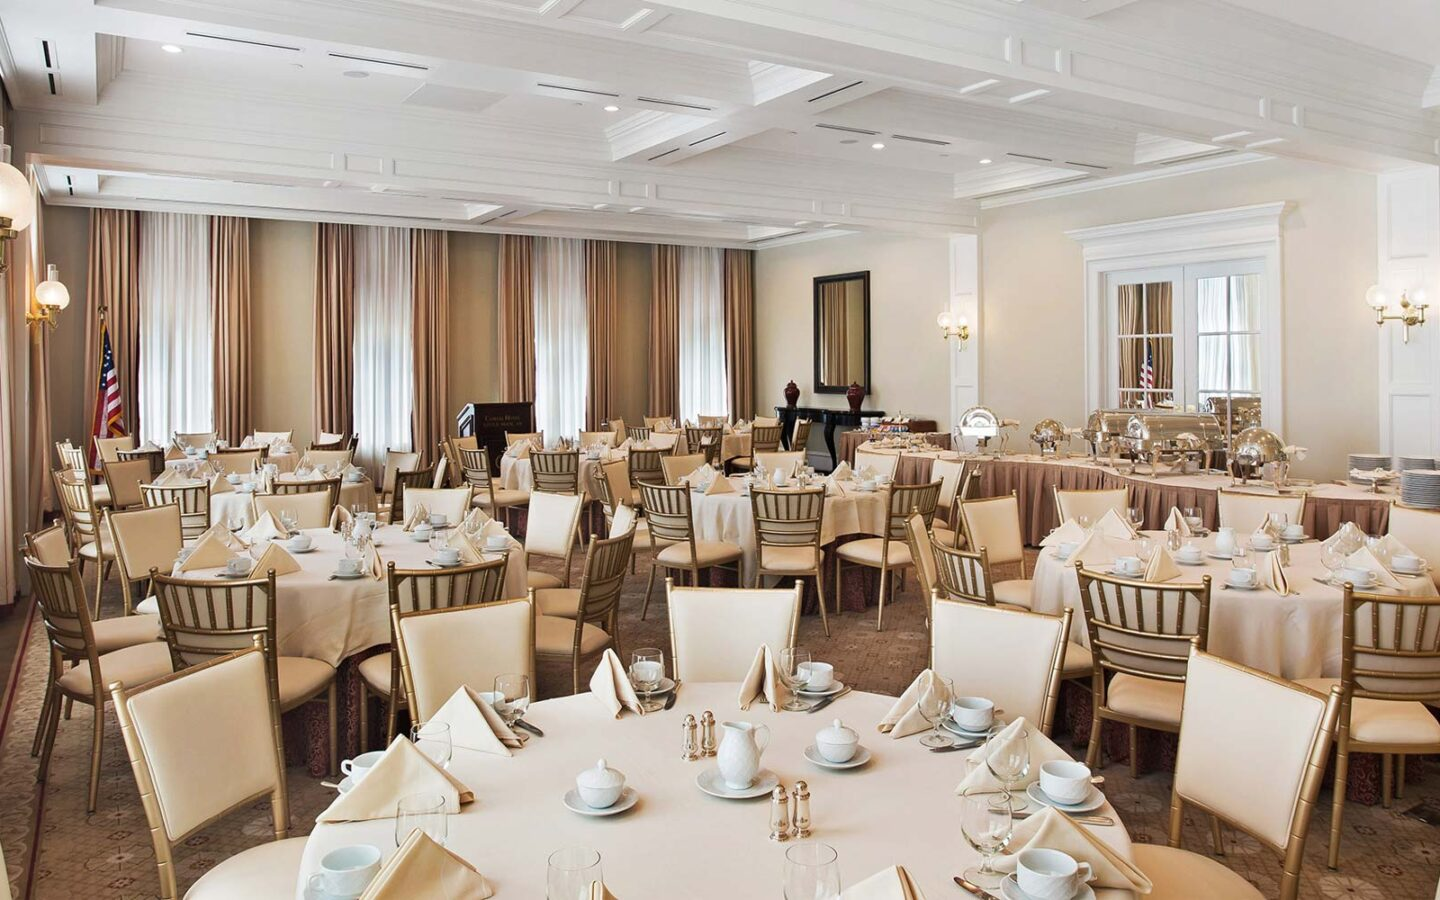 large hotel dining room with round white tables and chairs and a buffet table